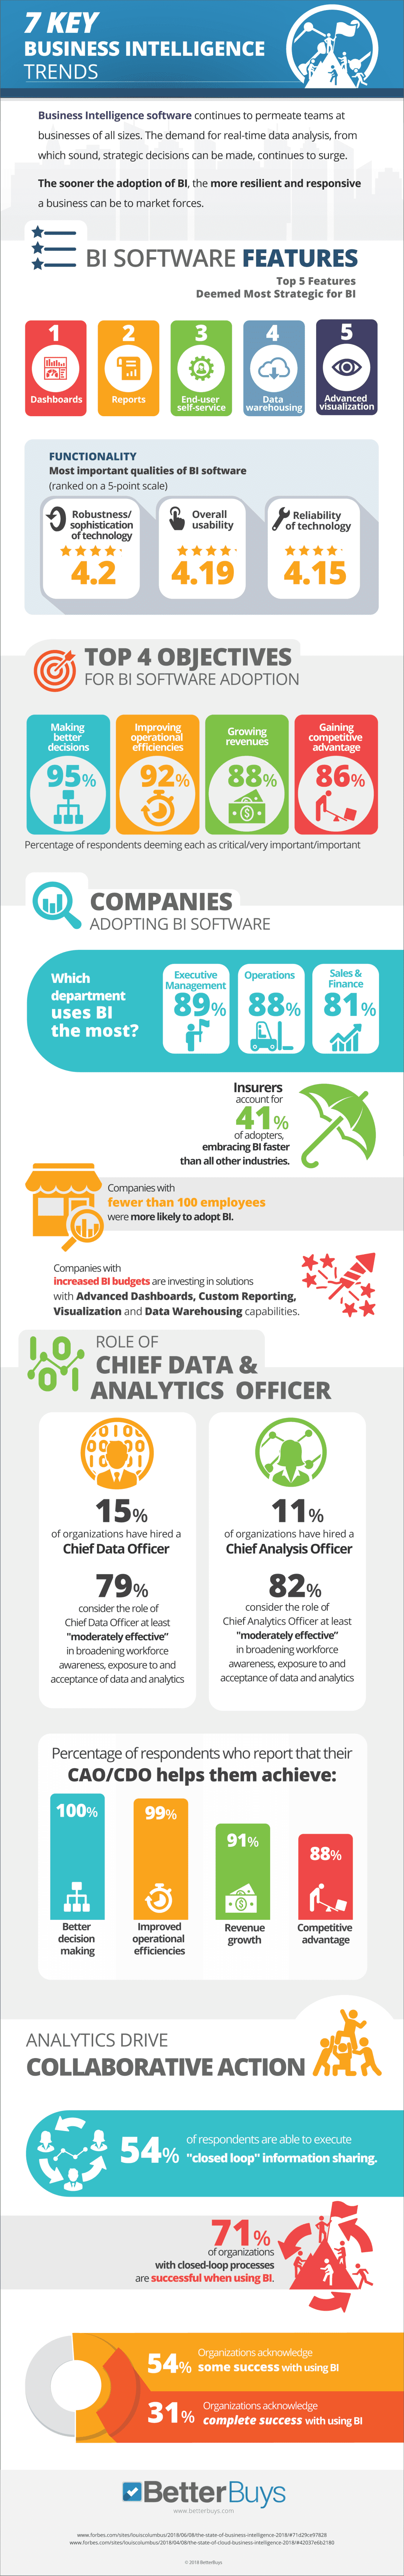 business intelligence trends (1)